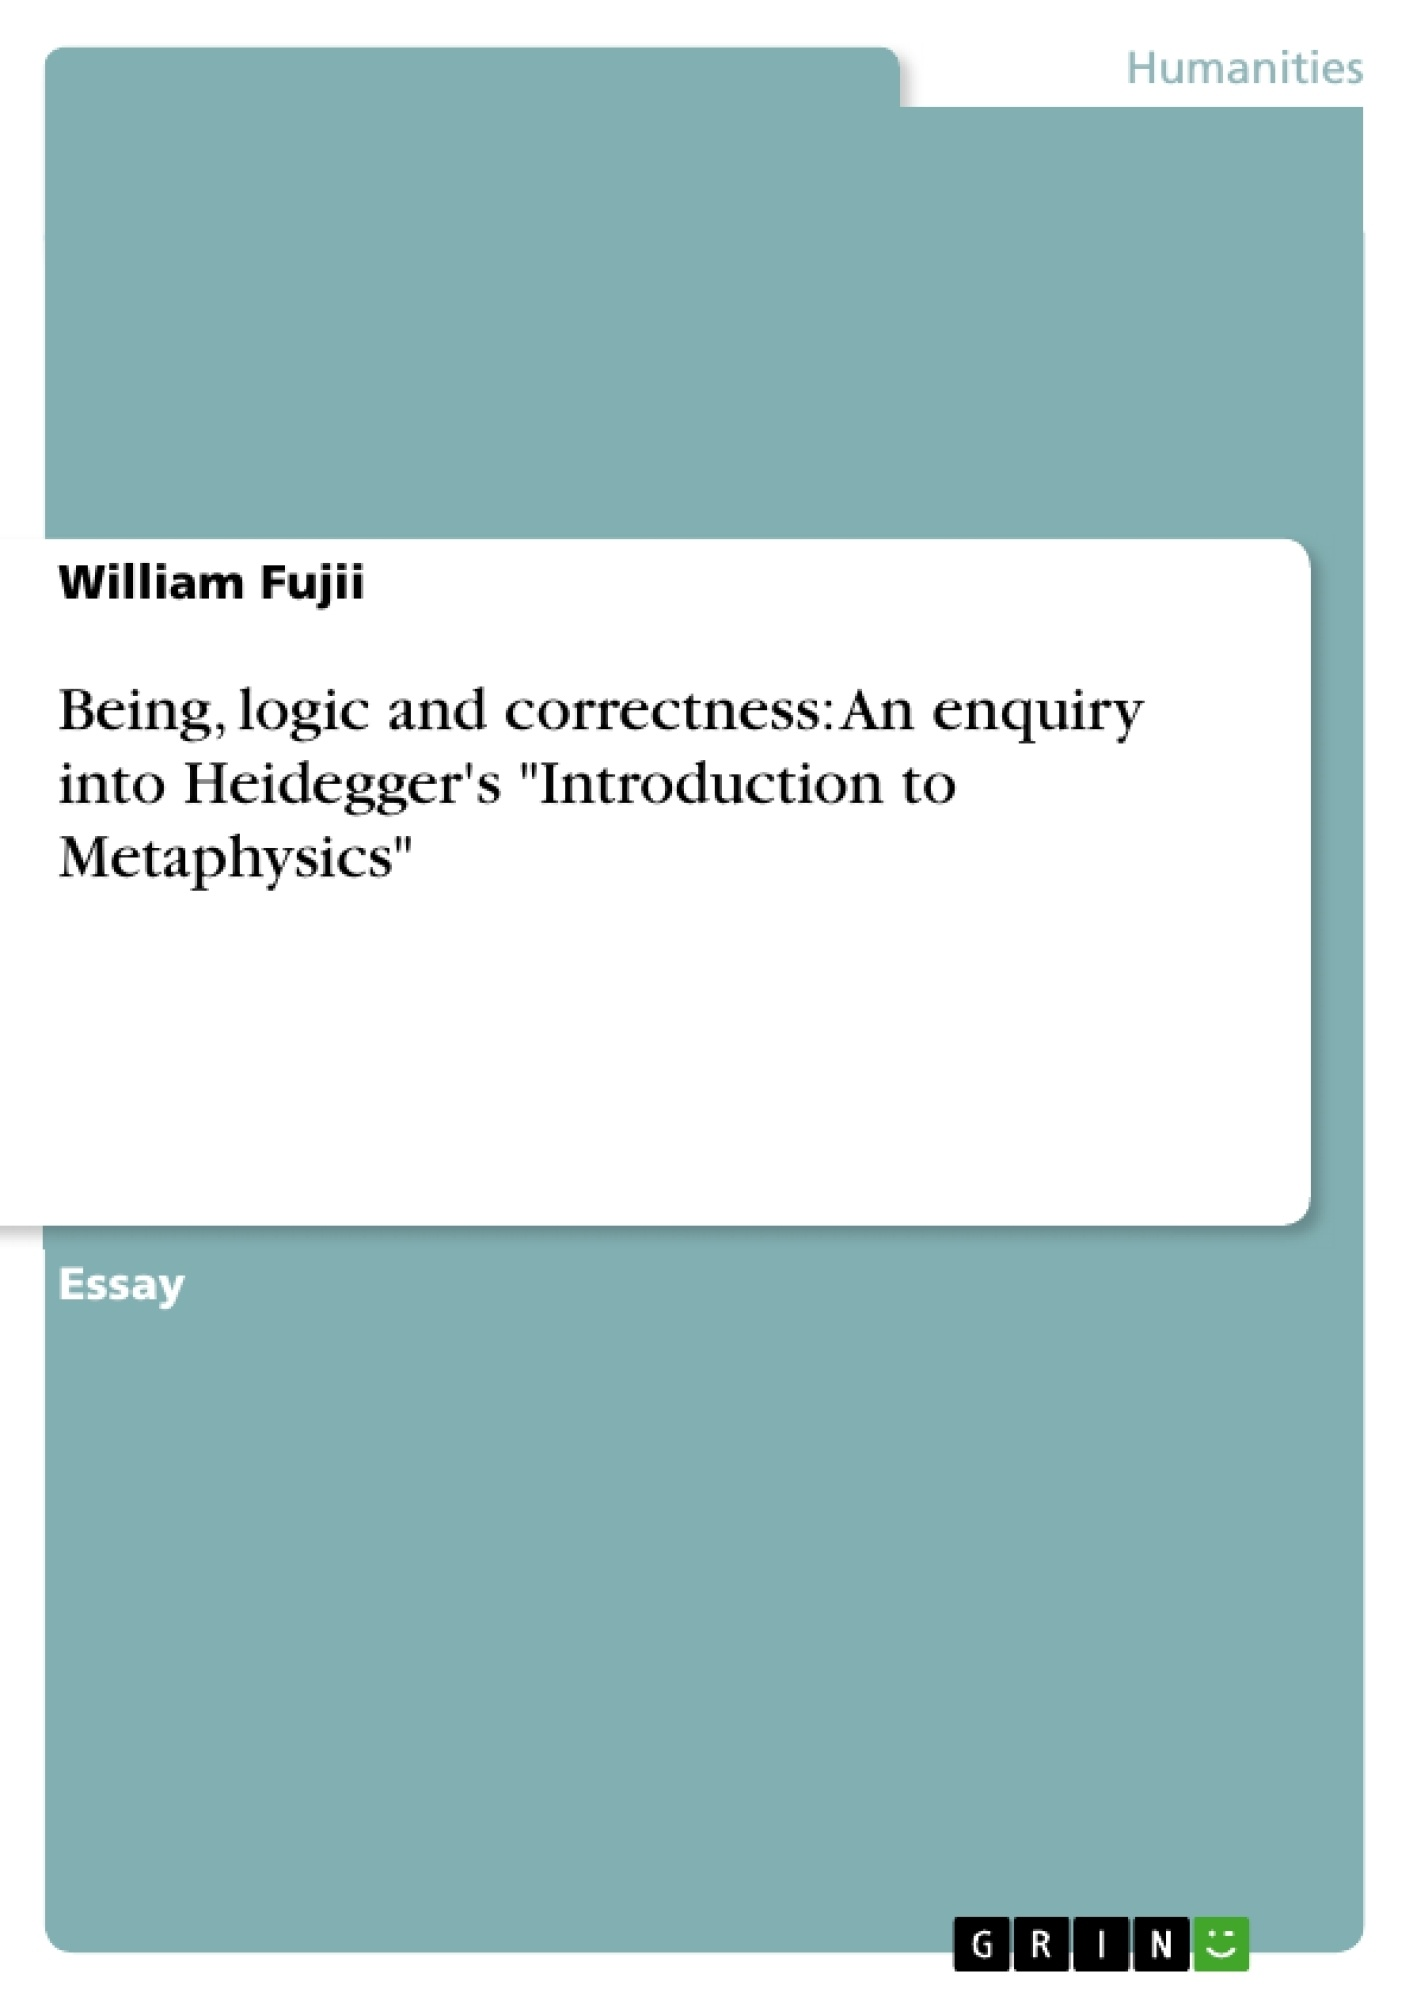 """Title: Being, logic and correctness: An enquiry into Heidegger's """"Introduction to Metaphysics"""""""